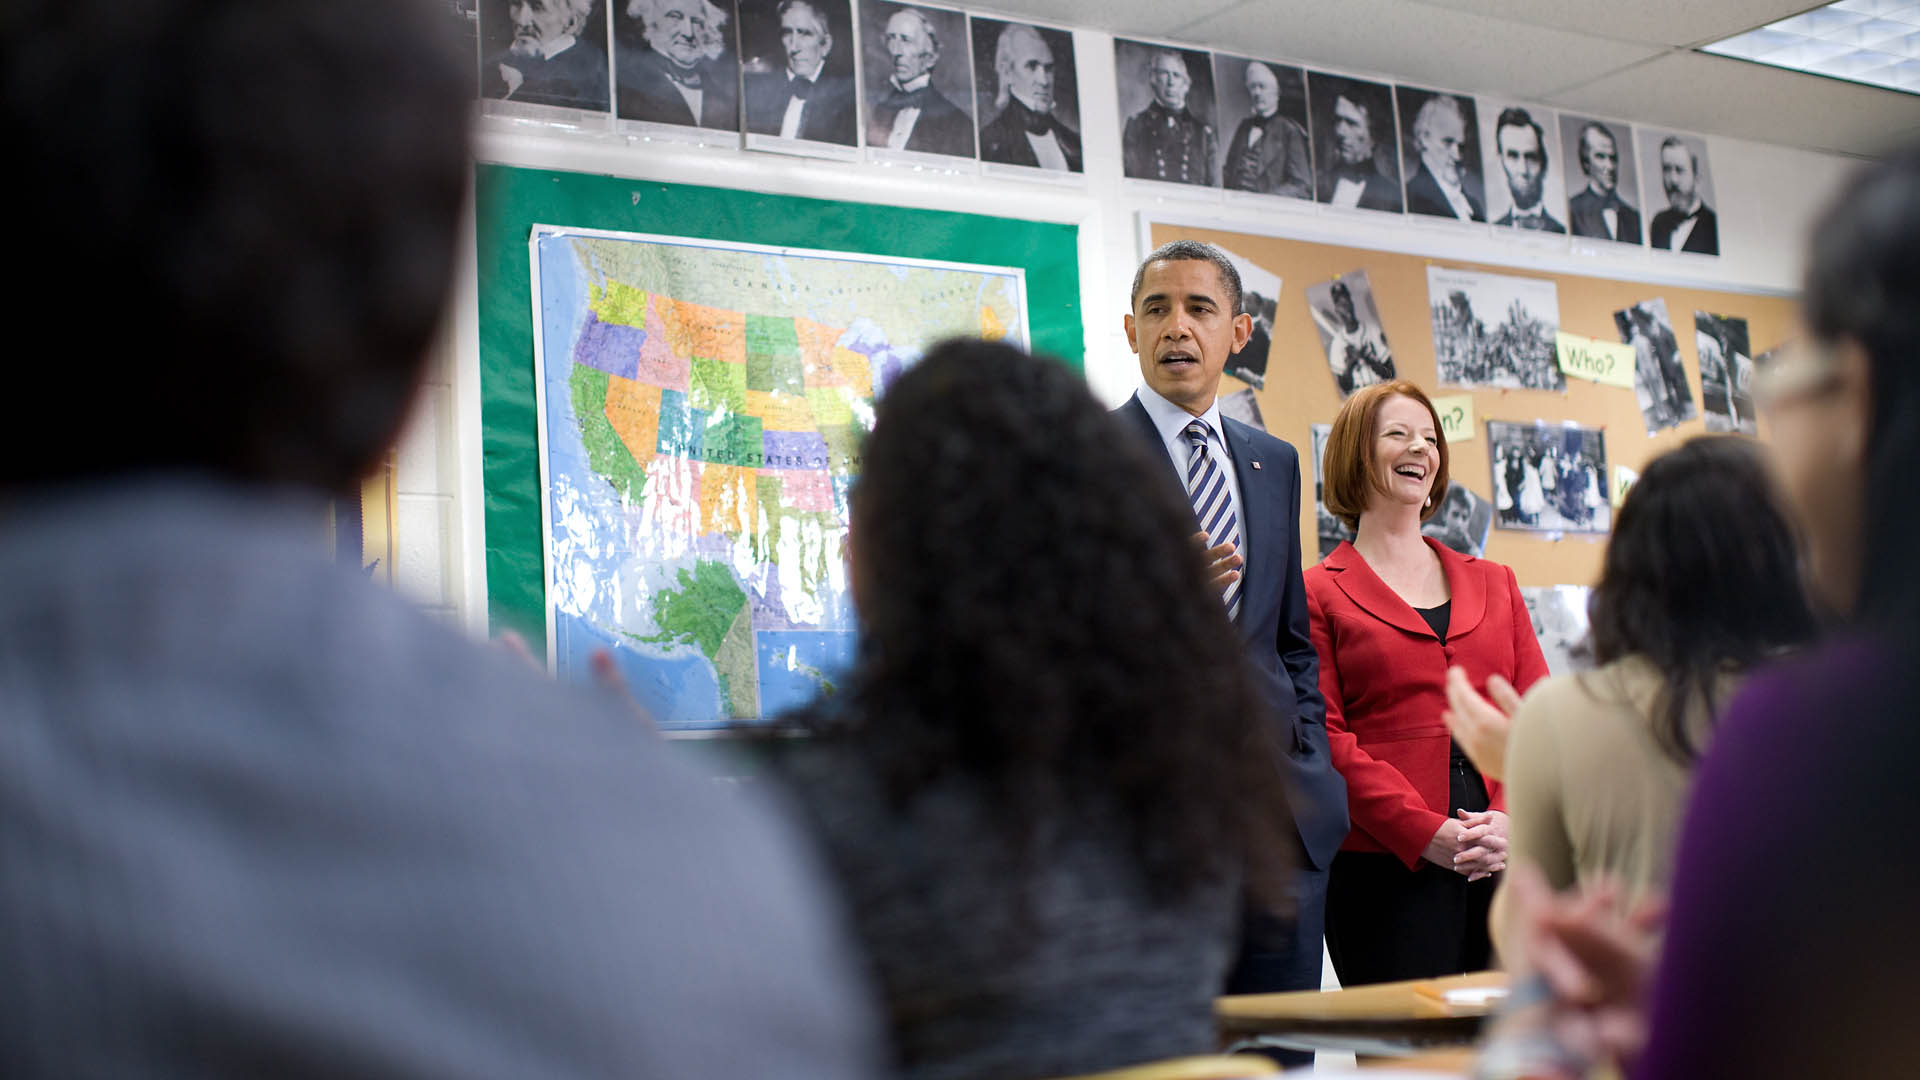 President Obama Visits School With Prime Minister Gillard